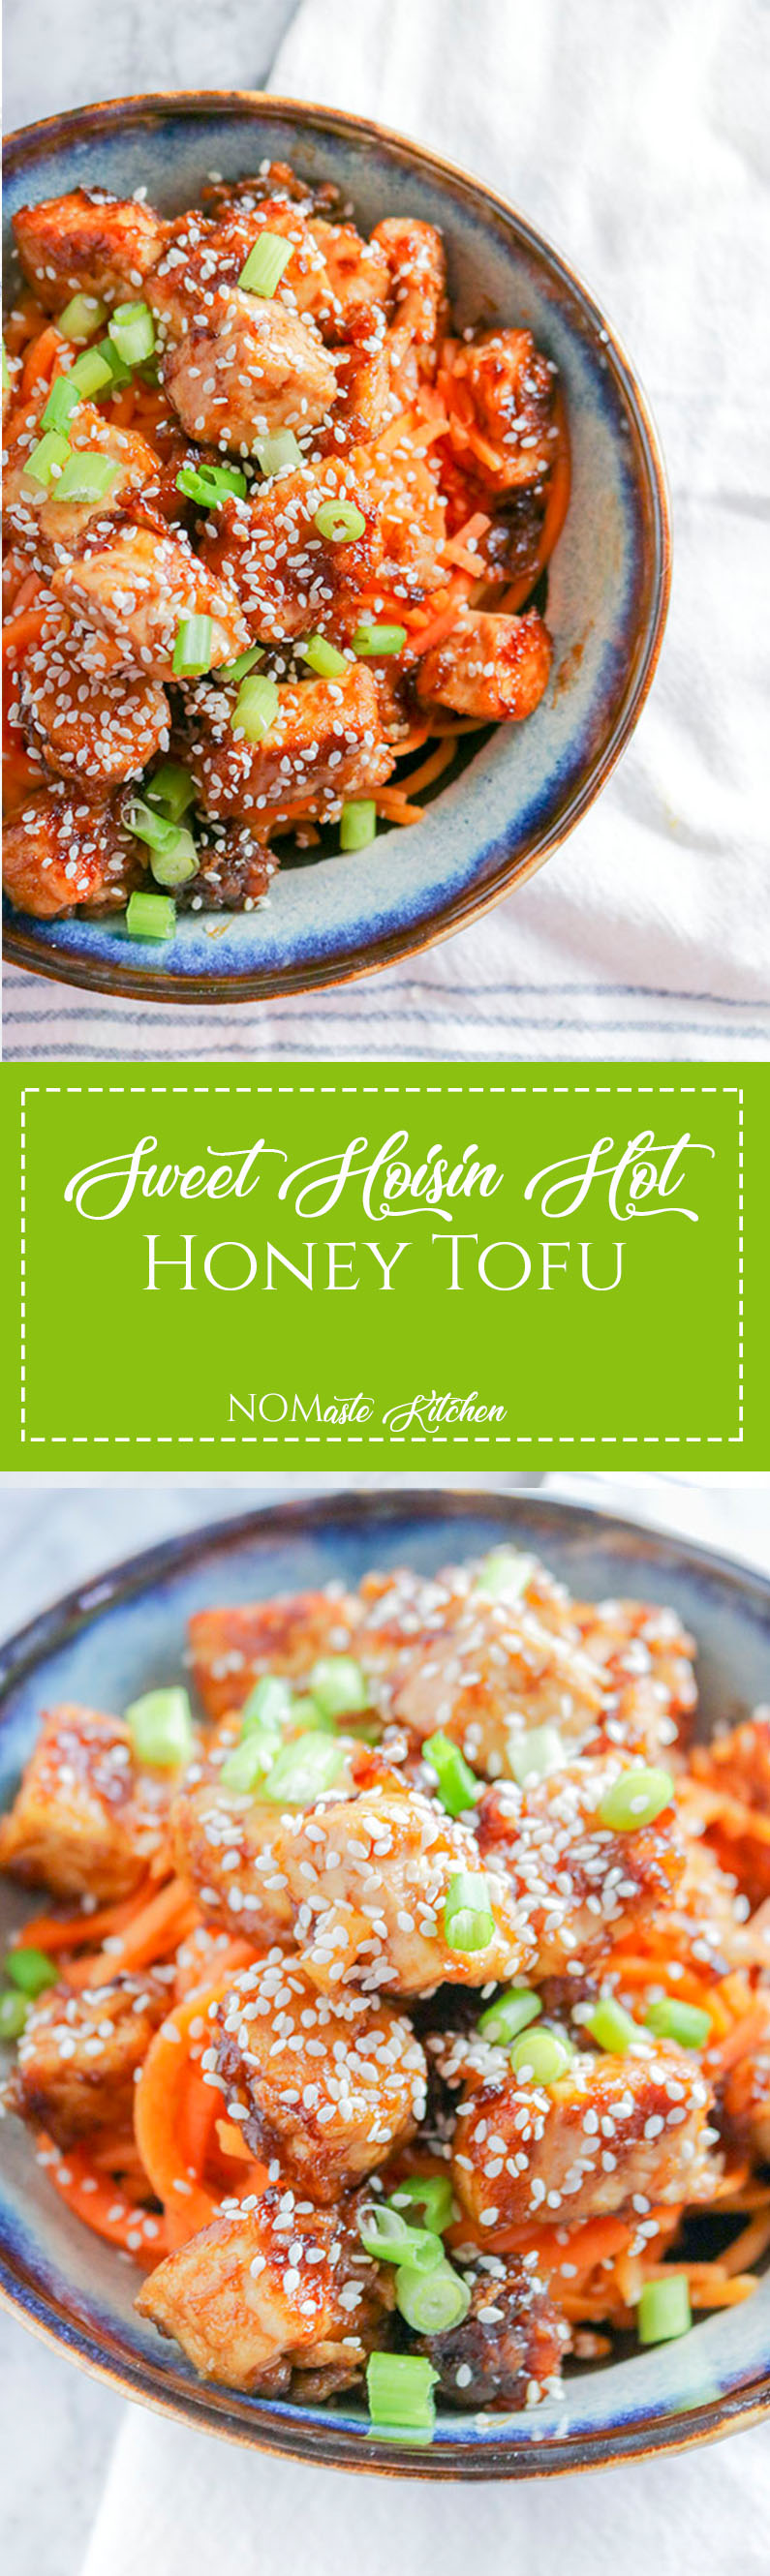 Crispy tofu coated with sweet yet tangy sauce, this Sweet Hoisin and Hot Honey Tofu won't disappoint! Enjoy over a bed of veggie noodles, farro, or greens! | NOMaste Kitchen